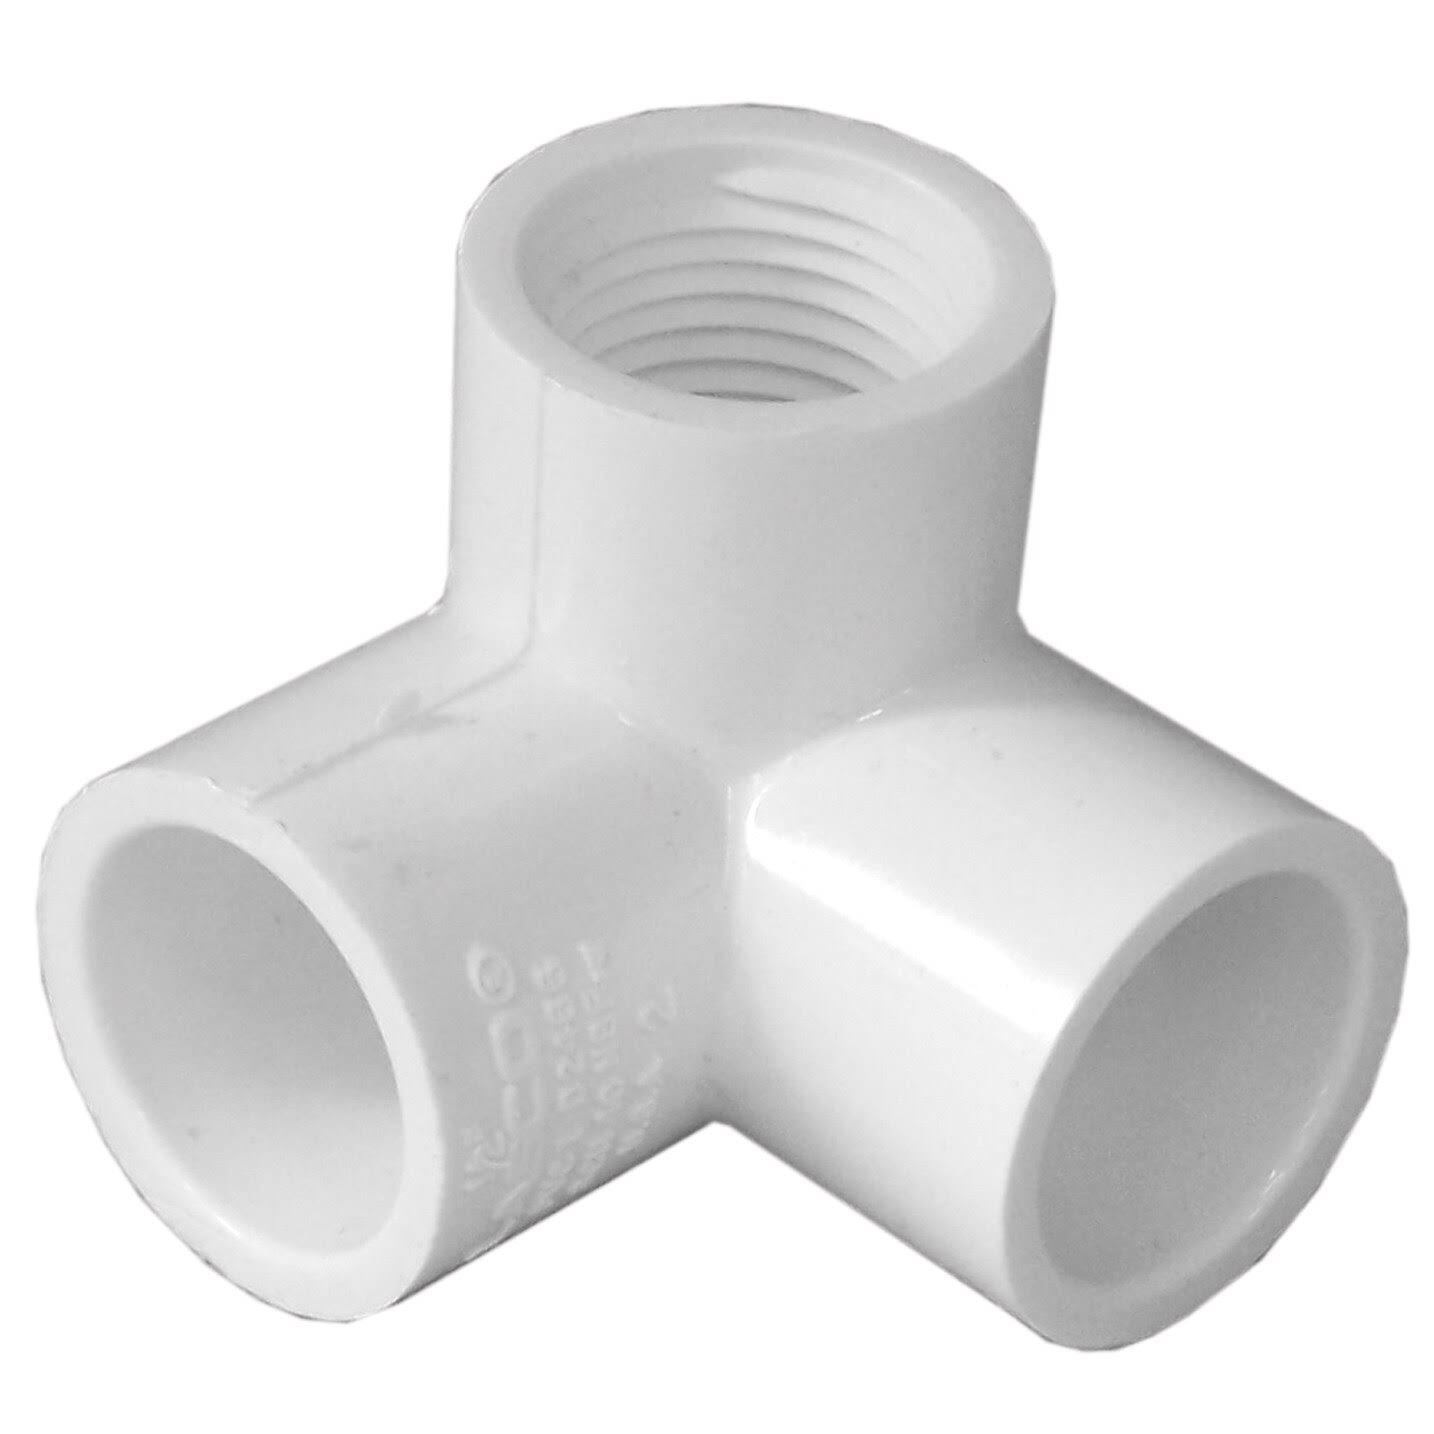 "Genova Products Pvc 90 degrees Elbow - with Female Side, 1/2"", 3ct"